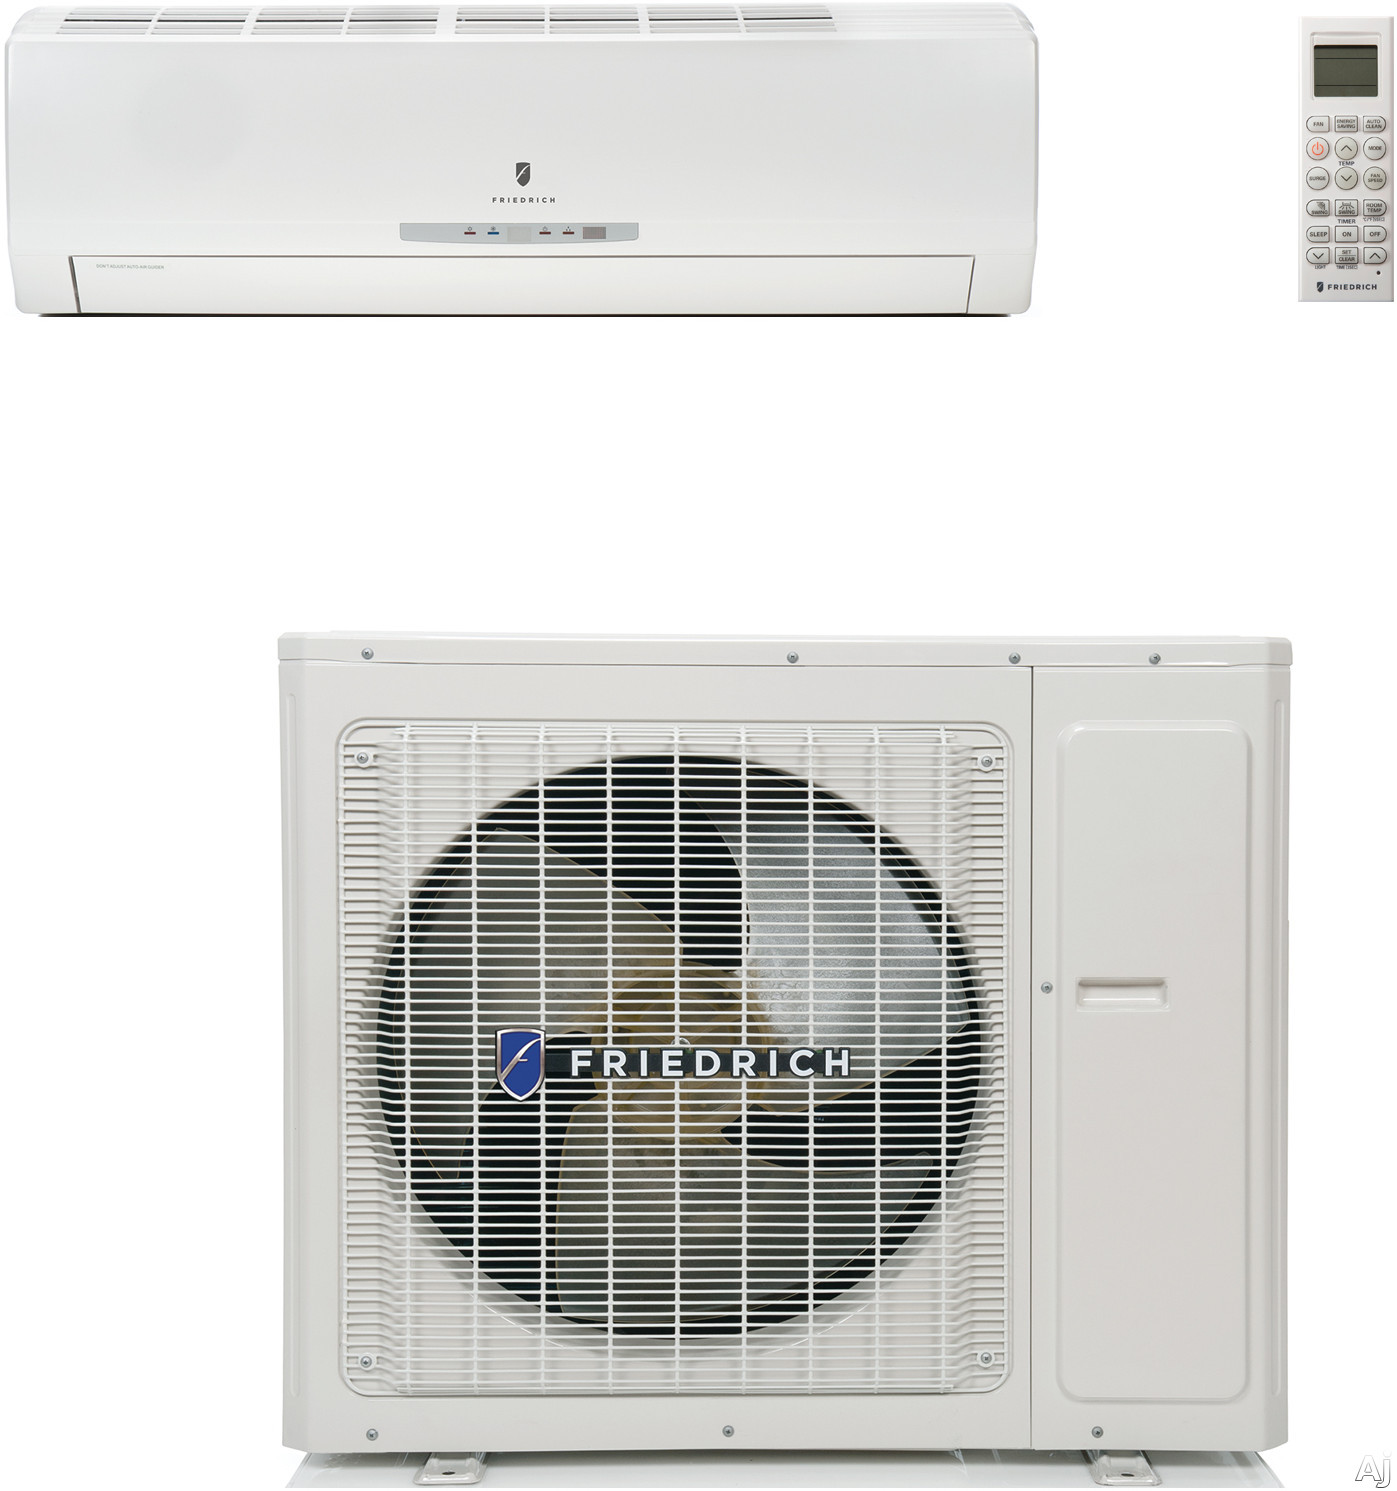 Friedrich Breeze Series BR1224W3A 12 000  24 000 BTU Single Zone Wall Mount Ductless Split System with Up To 25 000 BTU Heat Pump 116 EER 178 SEER Quick Connect Line Sets and Thru the Wall Window Installation